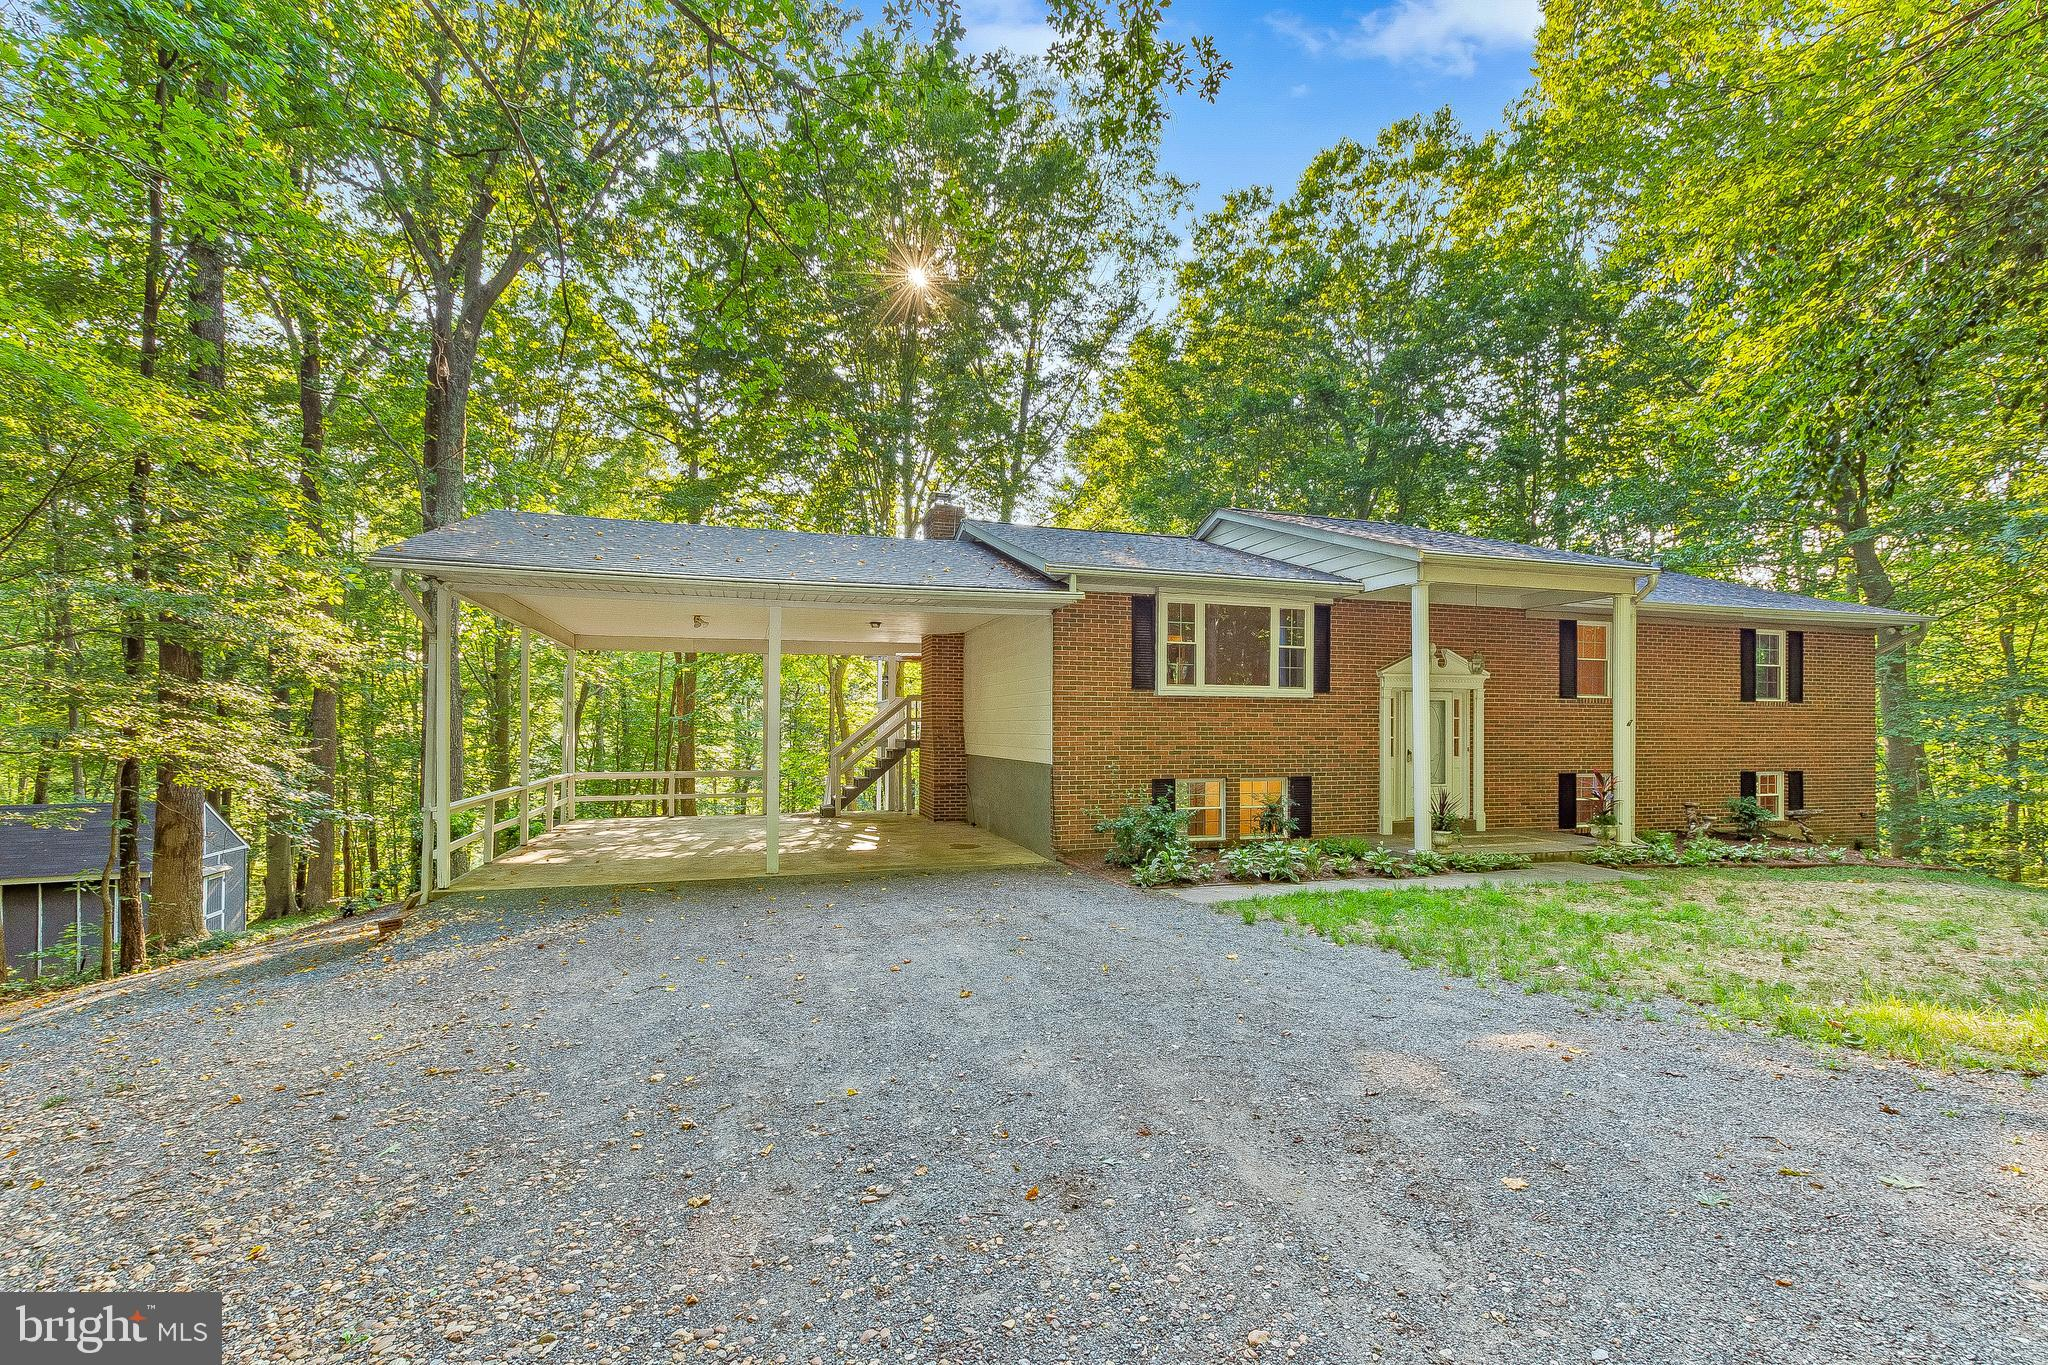 SEVEN (7.09) Acres provides you with your own 'Wonders of Nature' and 'Room to Roam' in this NORTH C